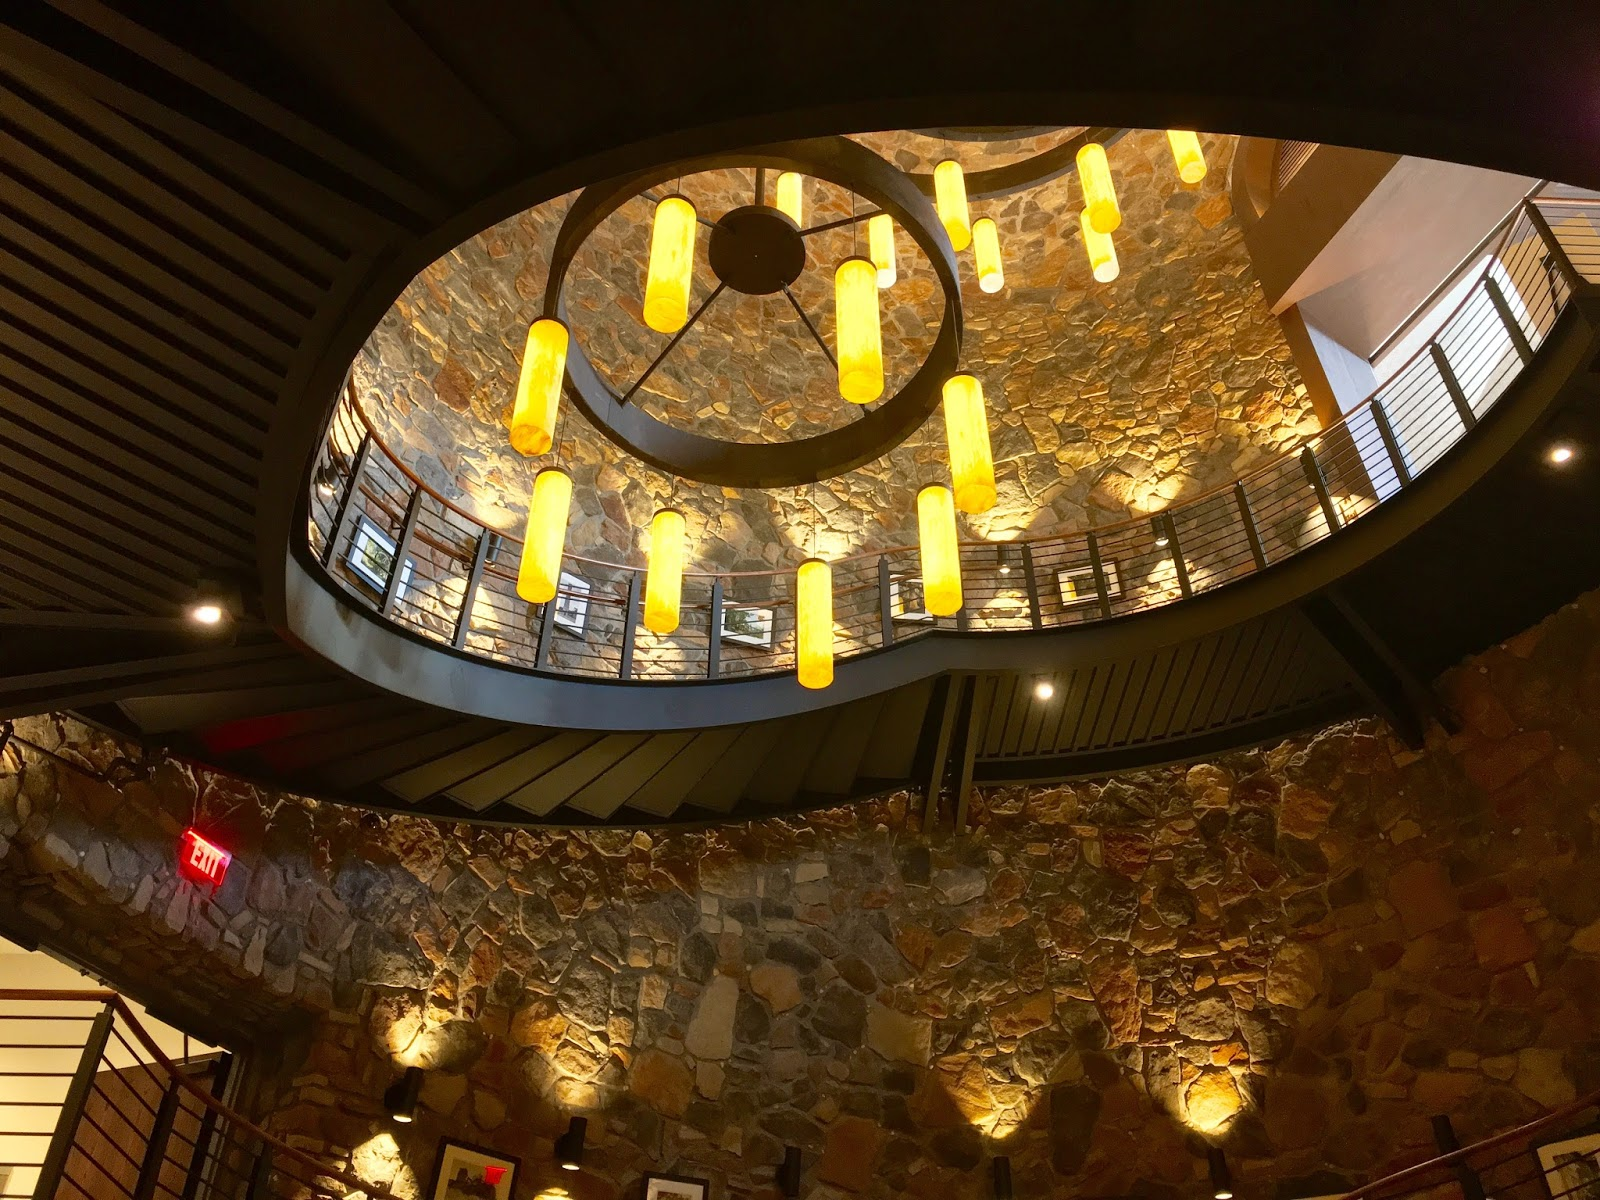 Epic Detailing on this spiral staircase is amazing from the beautifully crafted staircase to the expansive stone rock work and massive hanging light fixtures